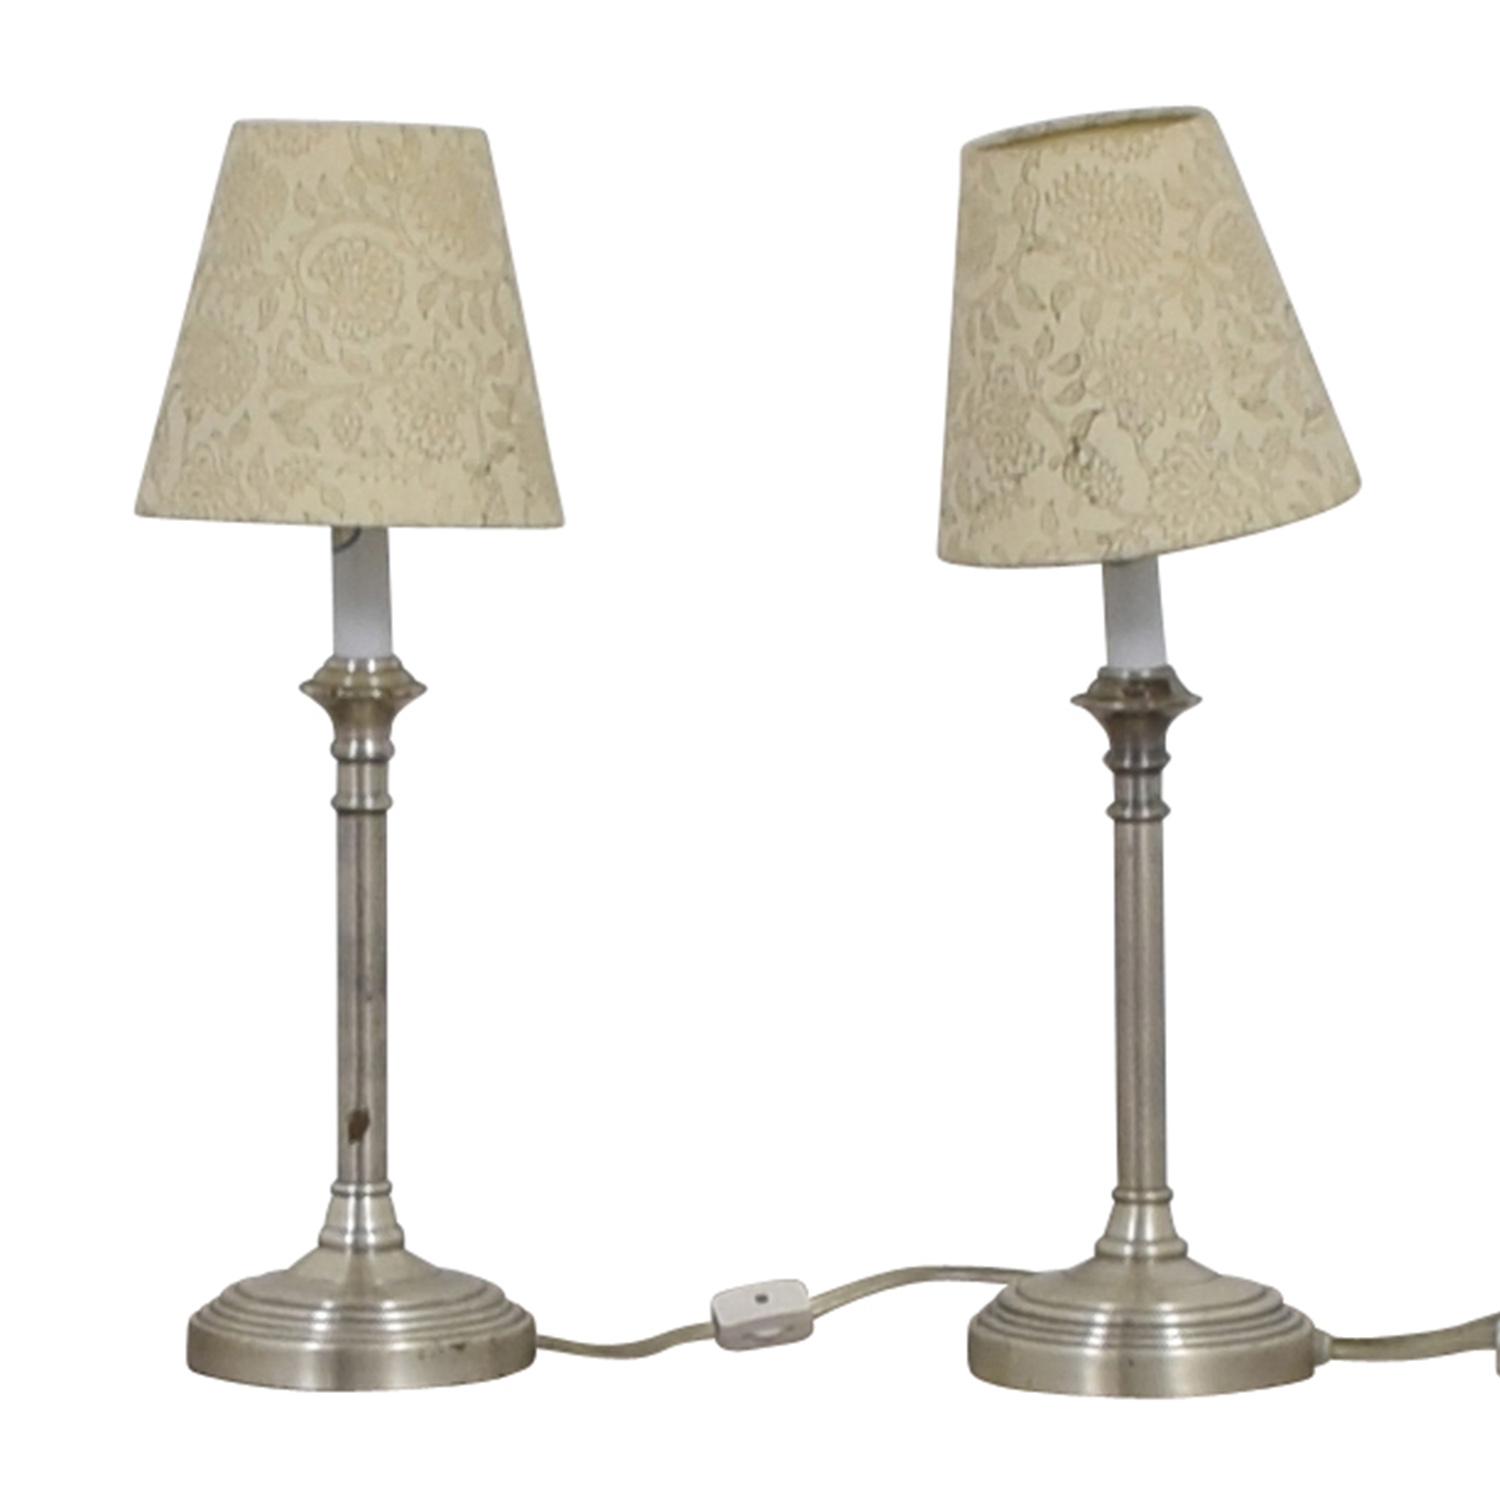 buy Pottery Barn Chrome Lamps with Floral Shades Pottery Barn Decor